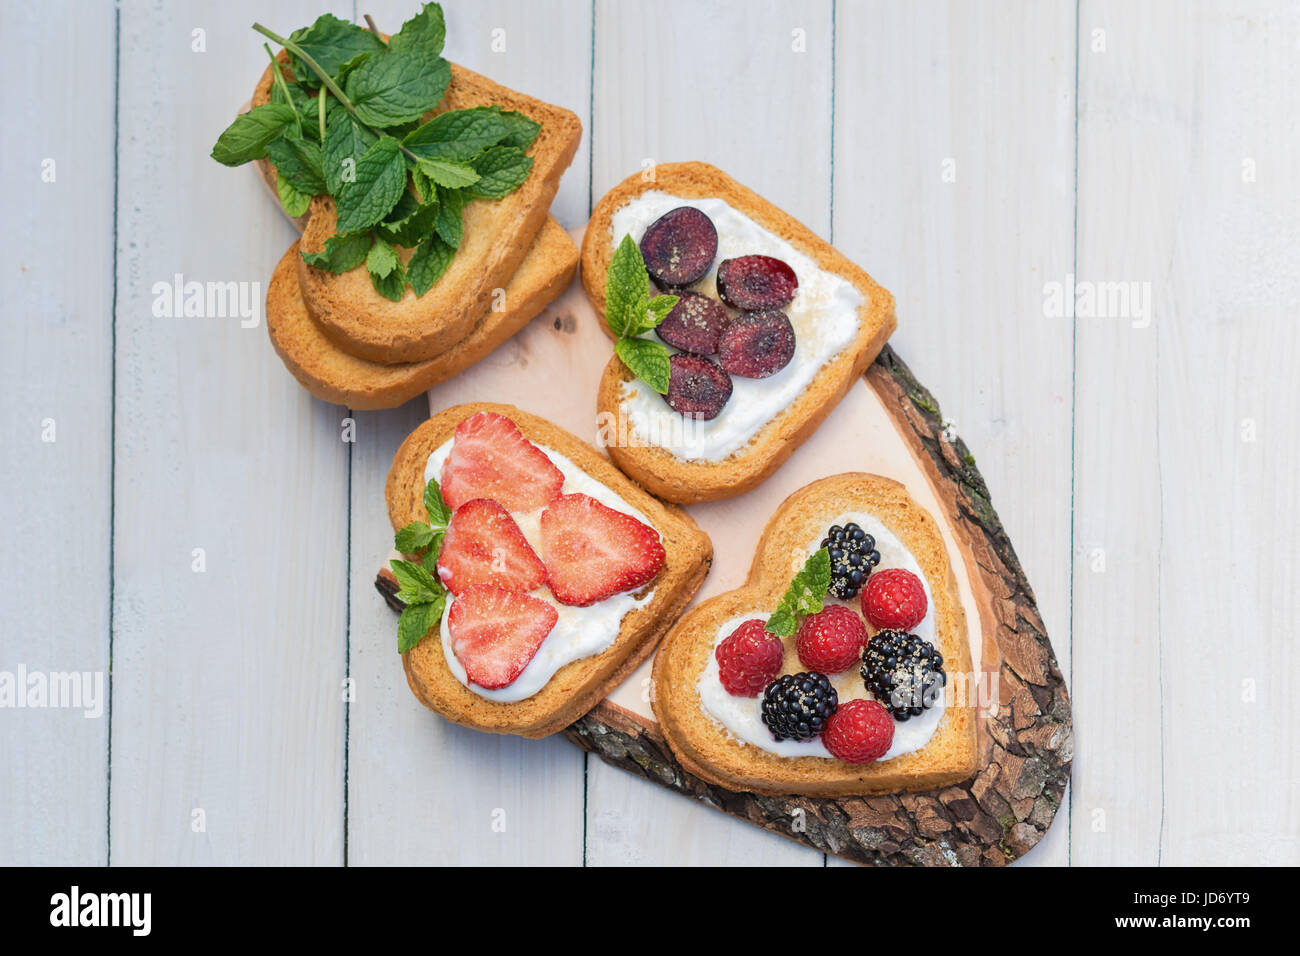 Heart shaped biscuits spread with quark, strawberries, blackberries, raspberries, cherries and a twig of mint presented - Stock Image